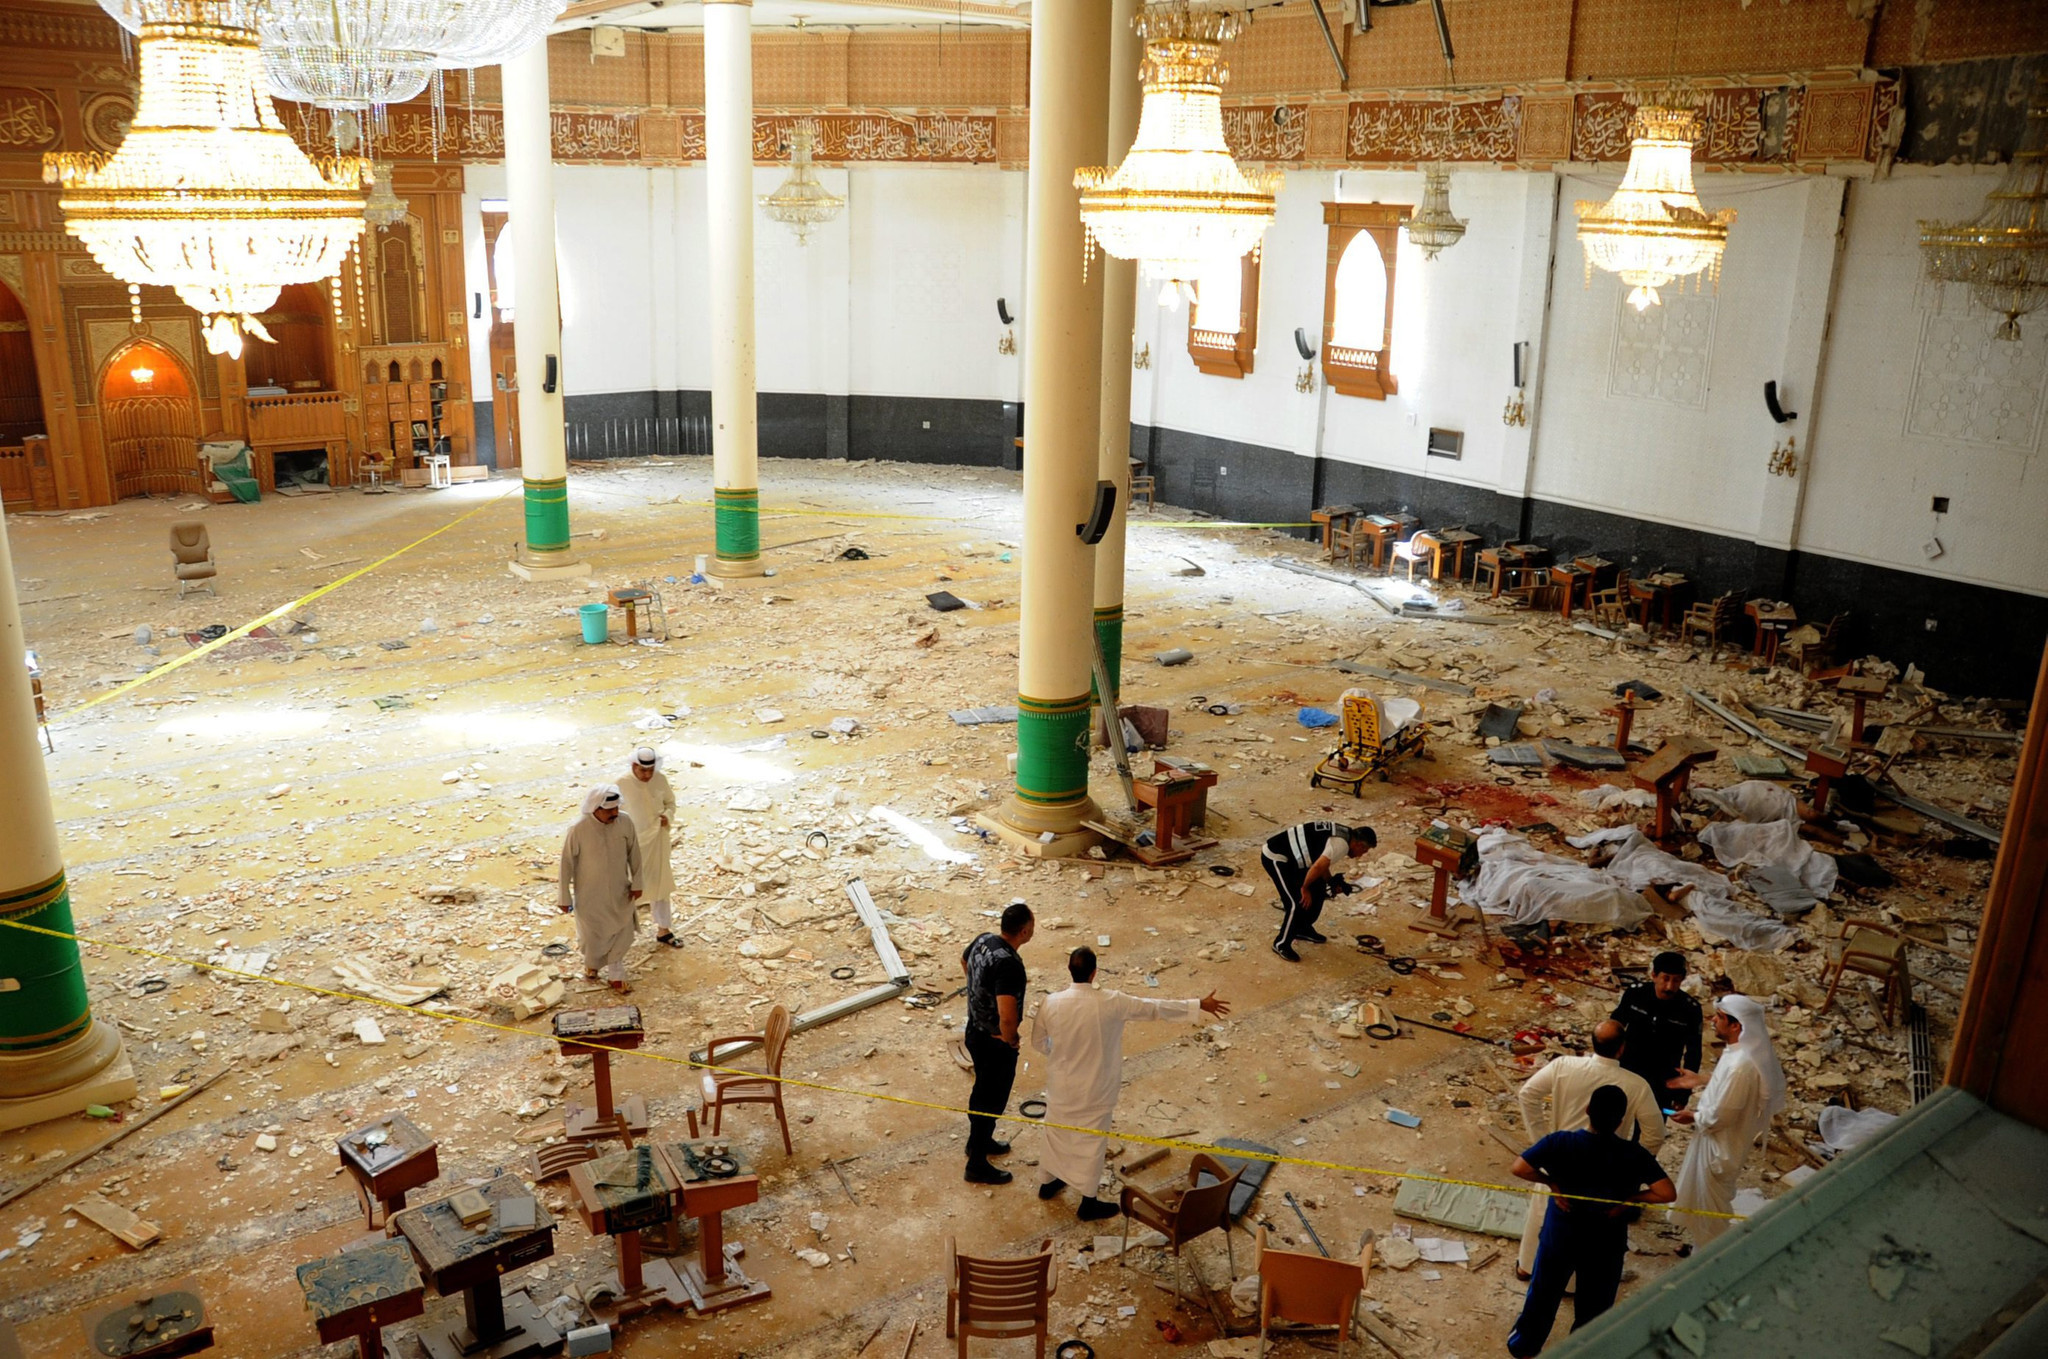 27 dead as Islamic State claims responsibility for blast at Shiite mosque in Kuwait